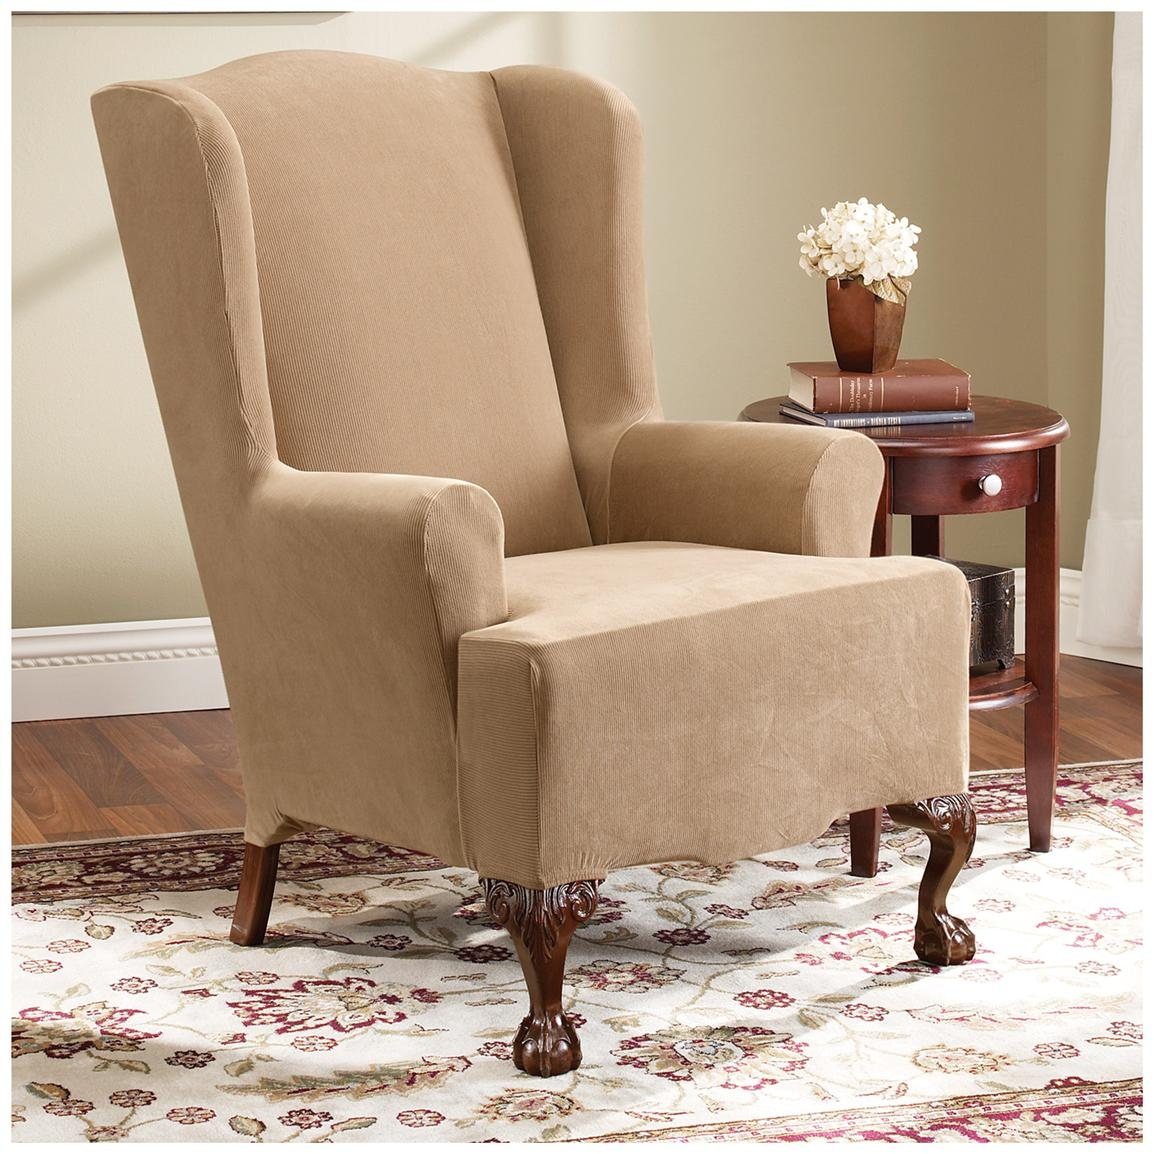 T Cushion Chair Slipcover With Ottoman Home Chair Designs With Sofa And Chair Slipcovers (Image 14 of 15)